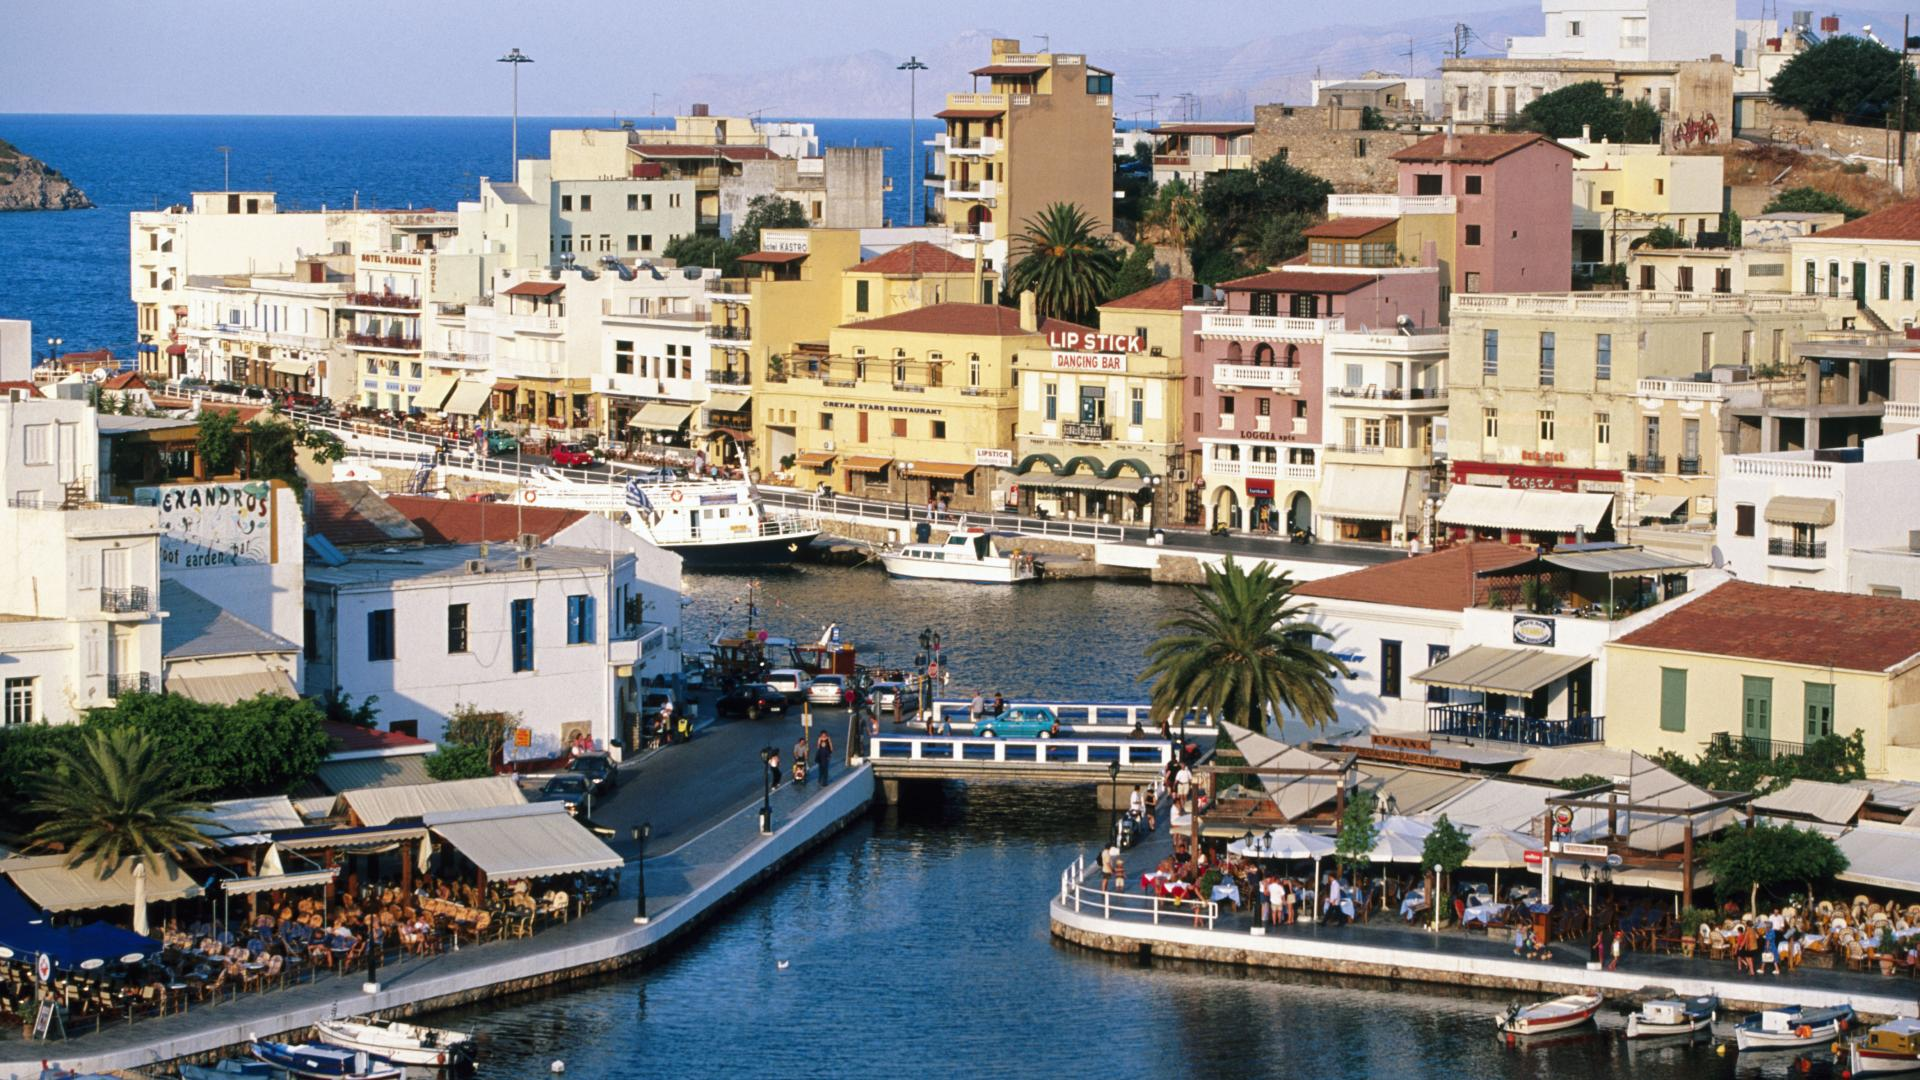 Ios 6 Wallpaper Hd Agios Nikolaos Crete Greece 10 000 Fonds D 233 Cran Hd